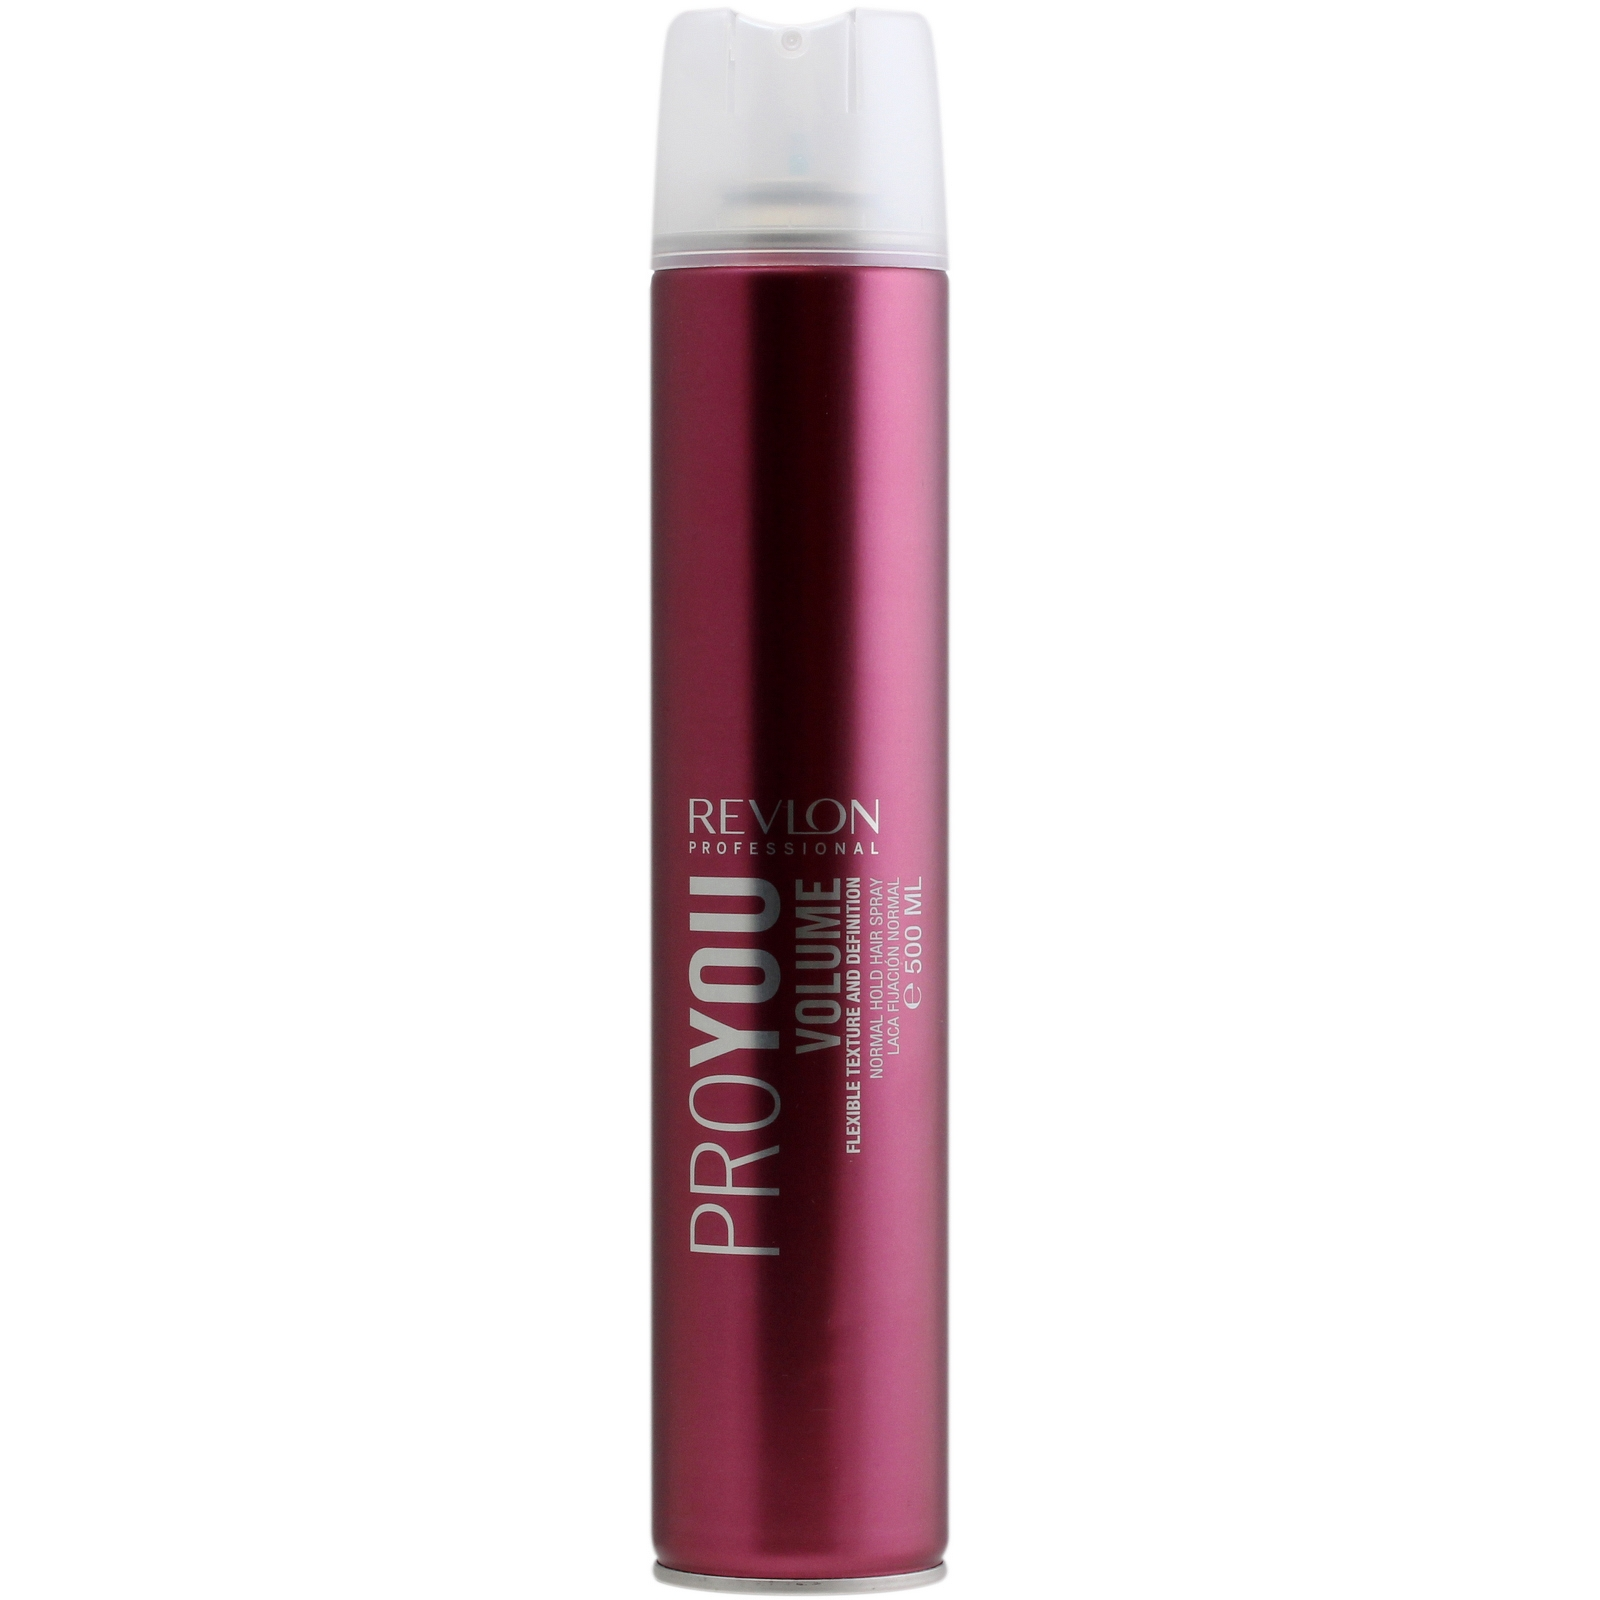 REVLON PROFESSIONAL Proyou Volume Hairspray 500ml